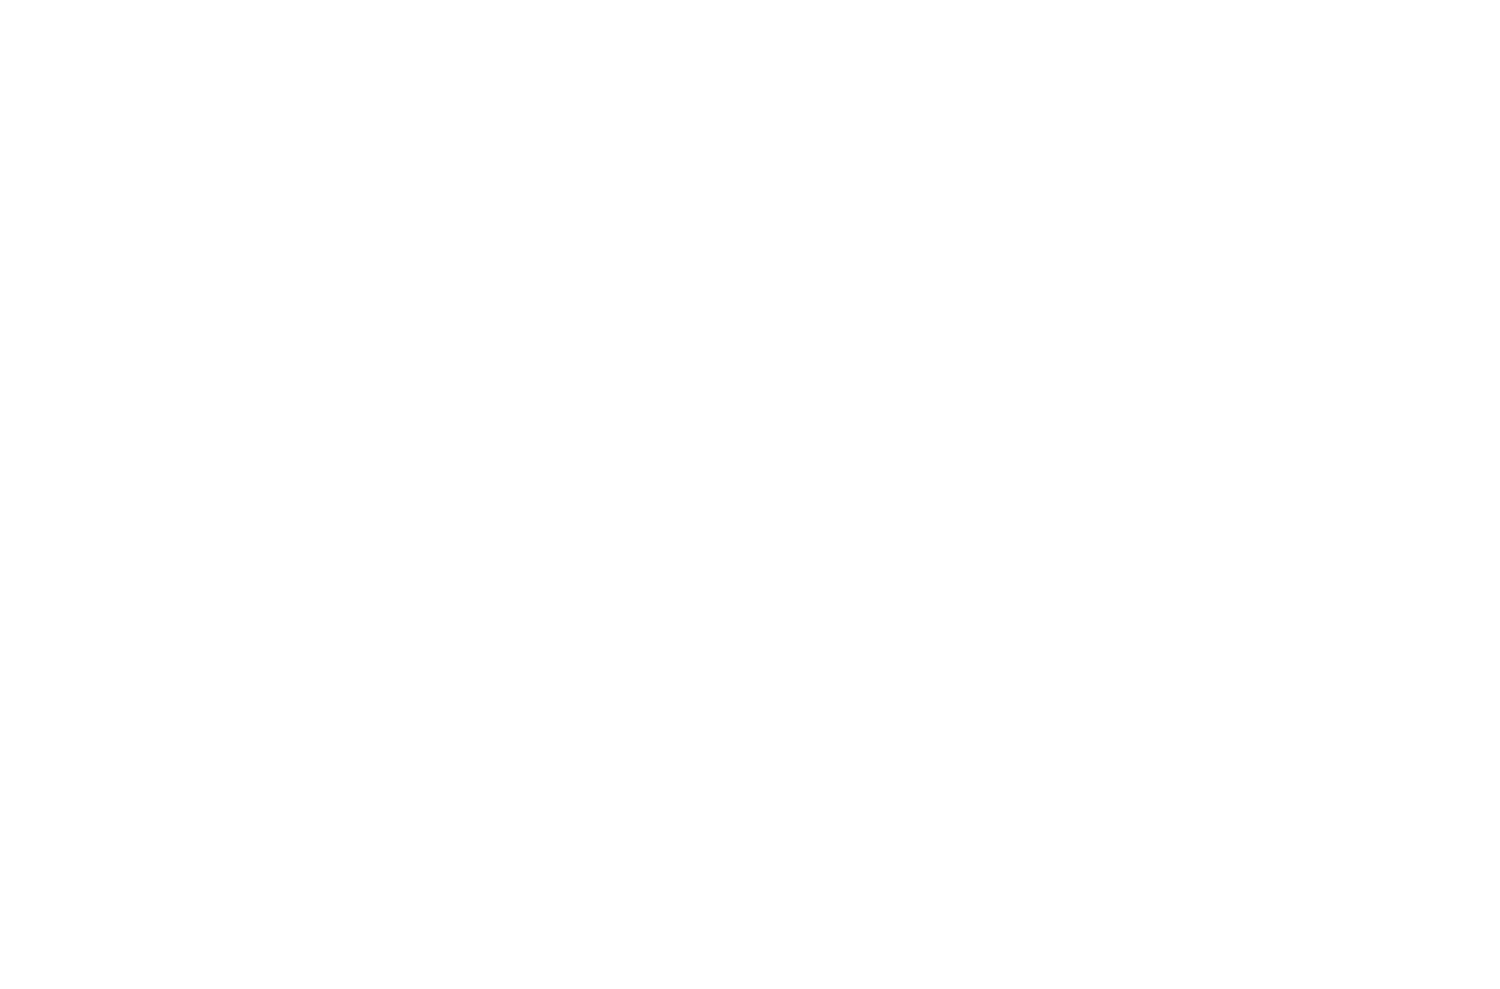 Body Image, Eating Disorder Treatment & Support | Body Brave